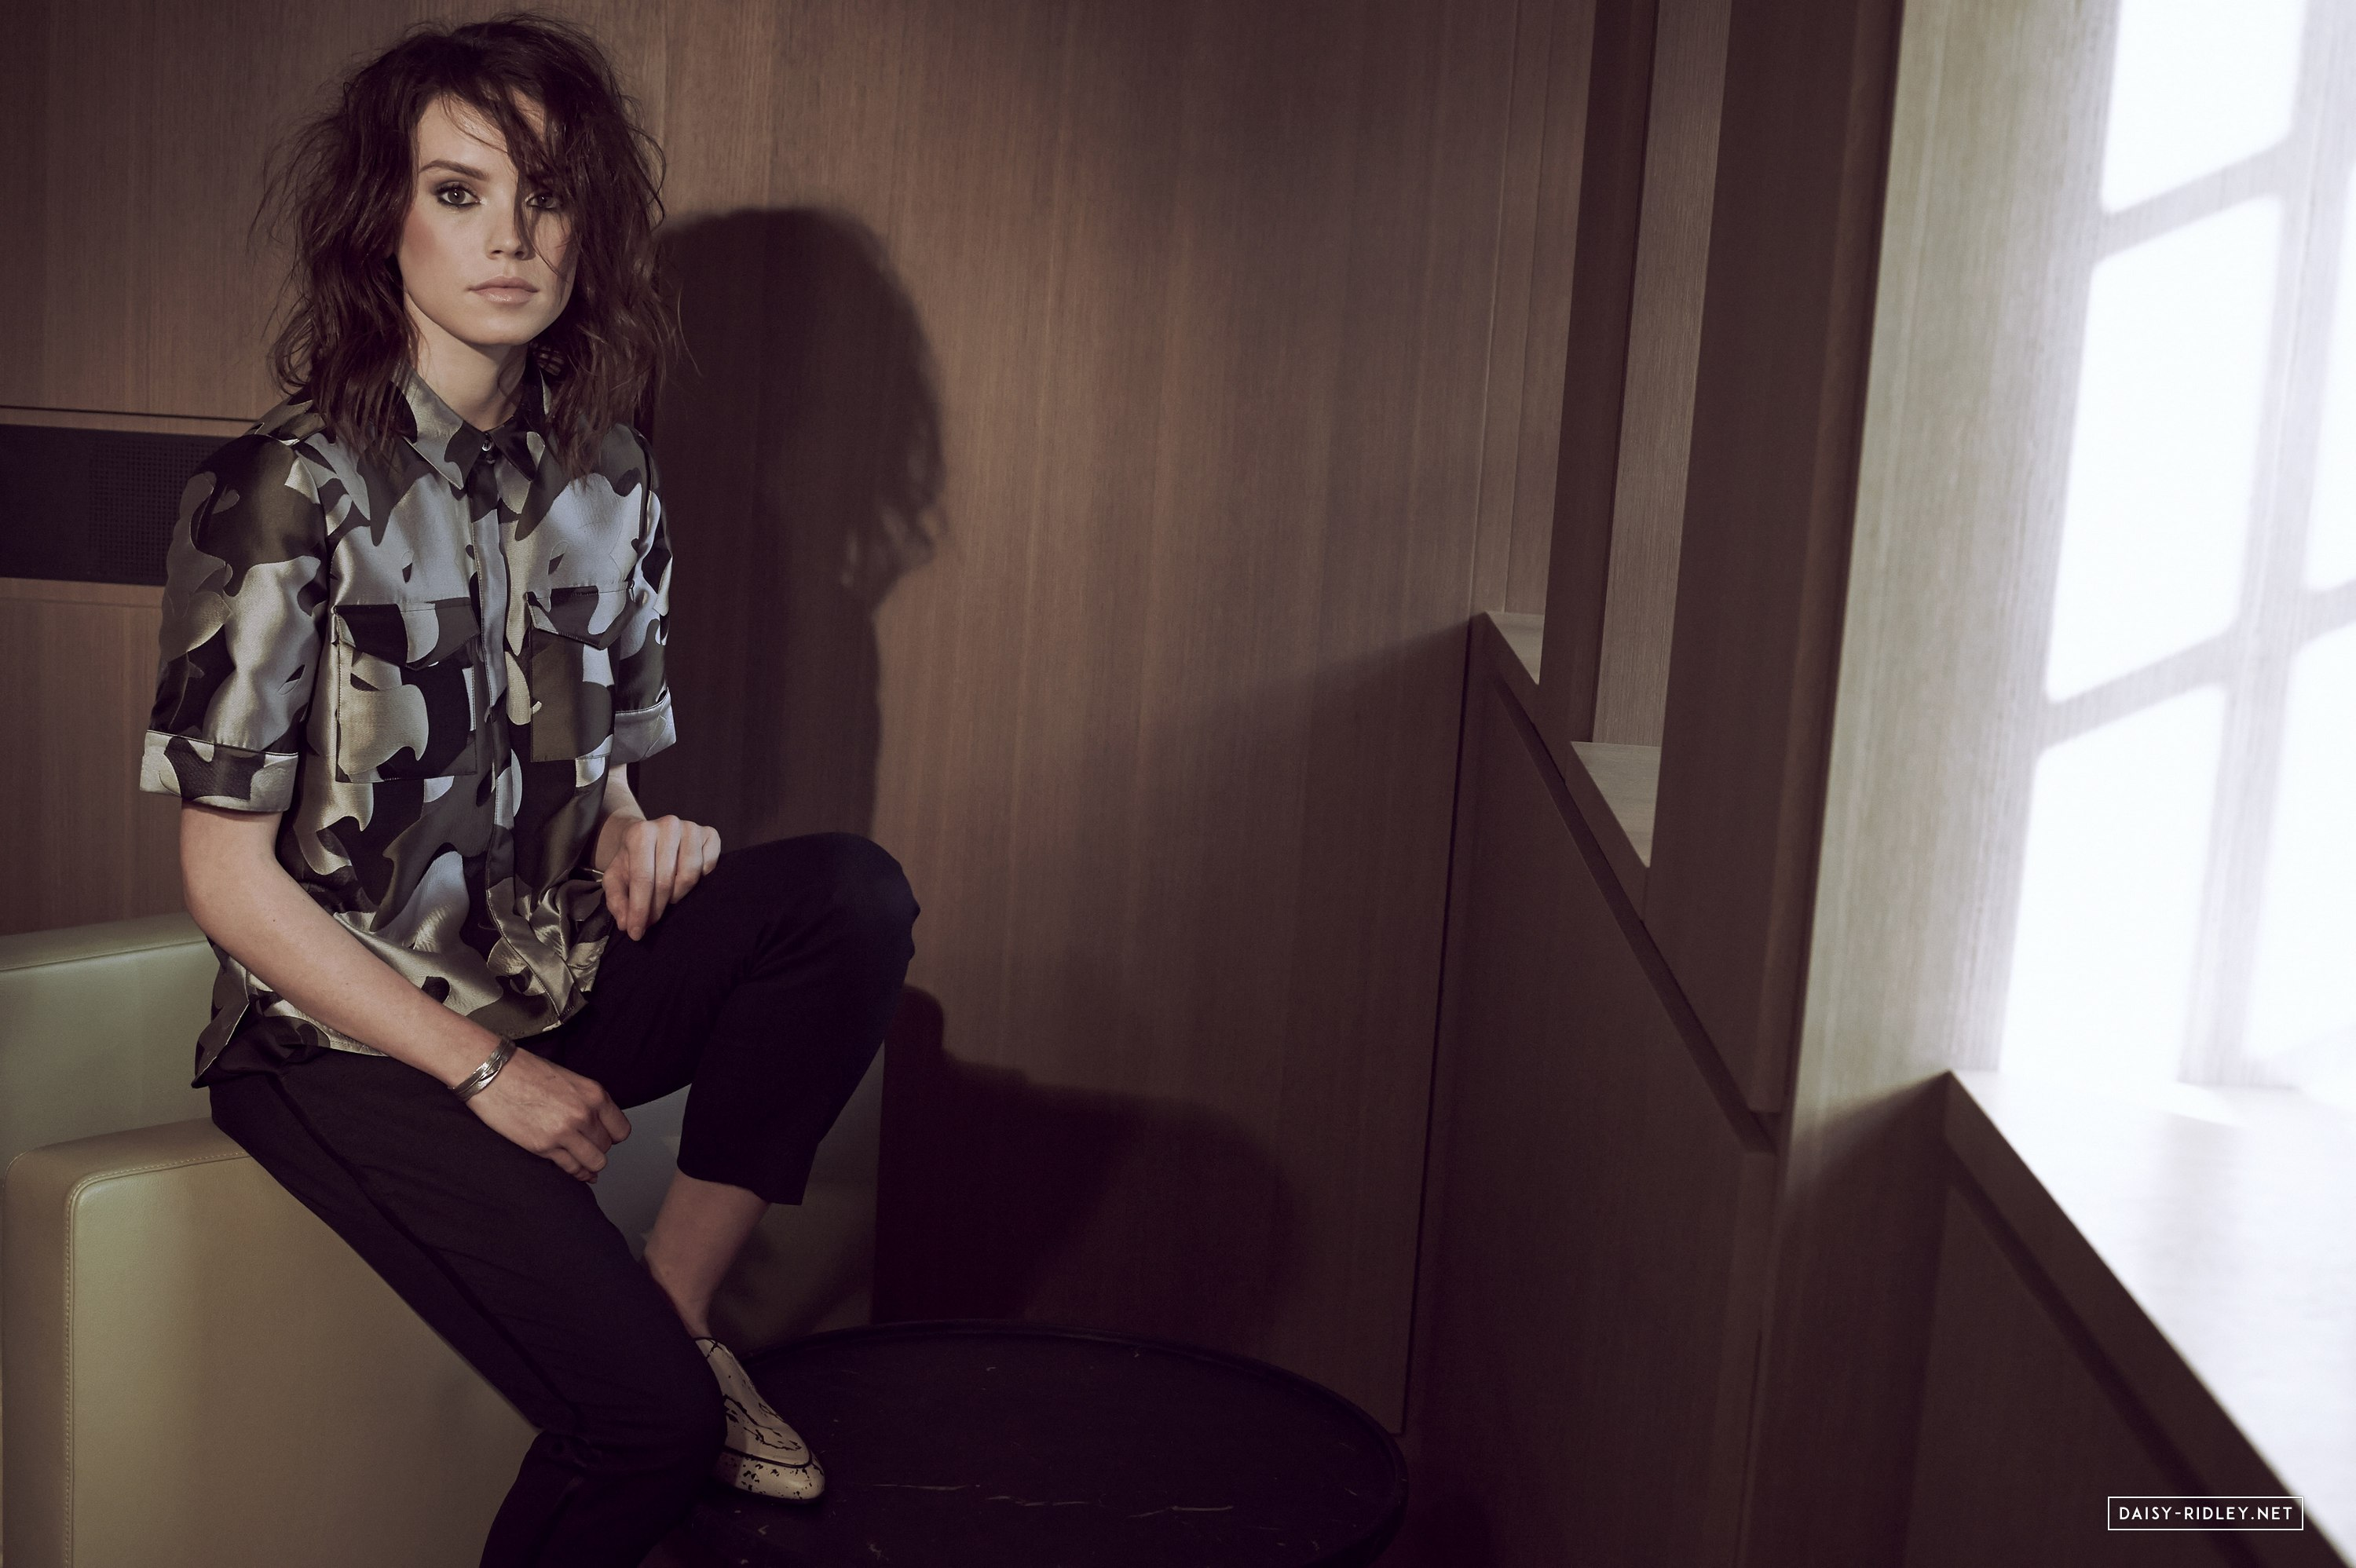 hermosas top d ridley photosession 001 001